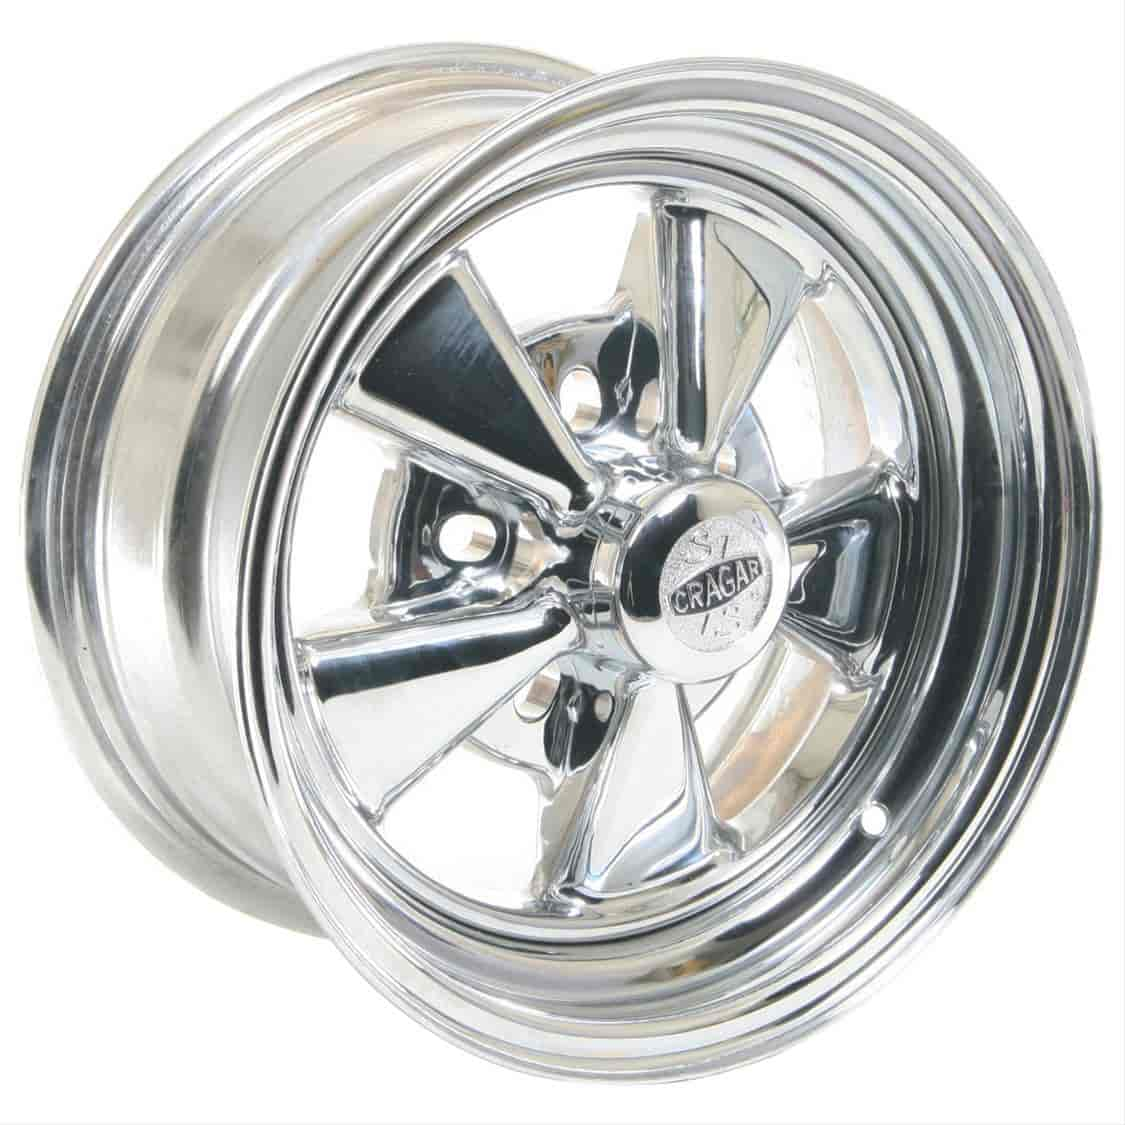 Cragar 08750 - Cragar 08/61 Series S/S Super Sport Wheels